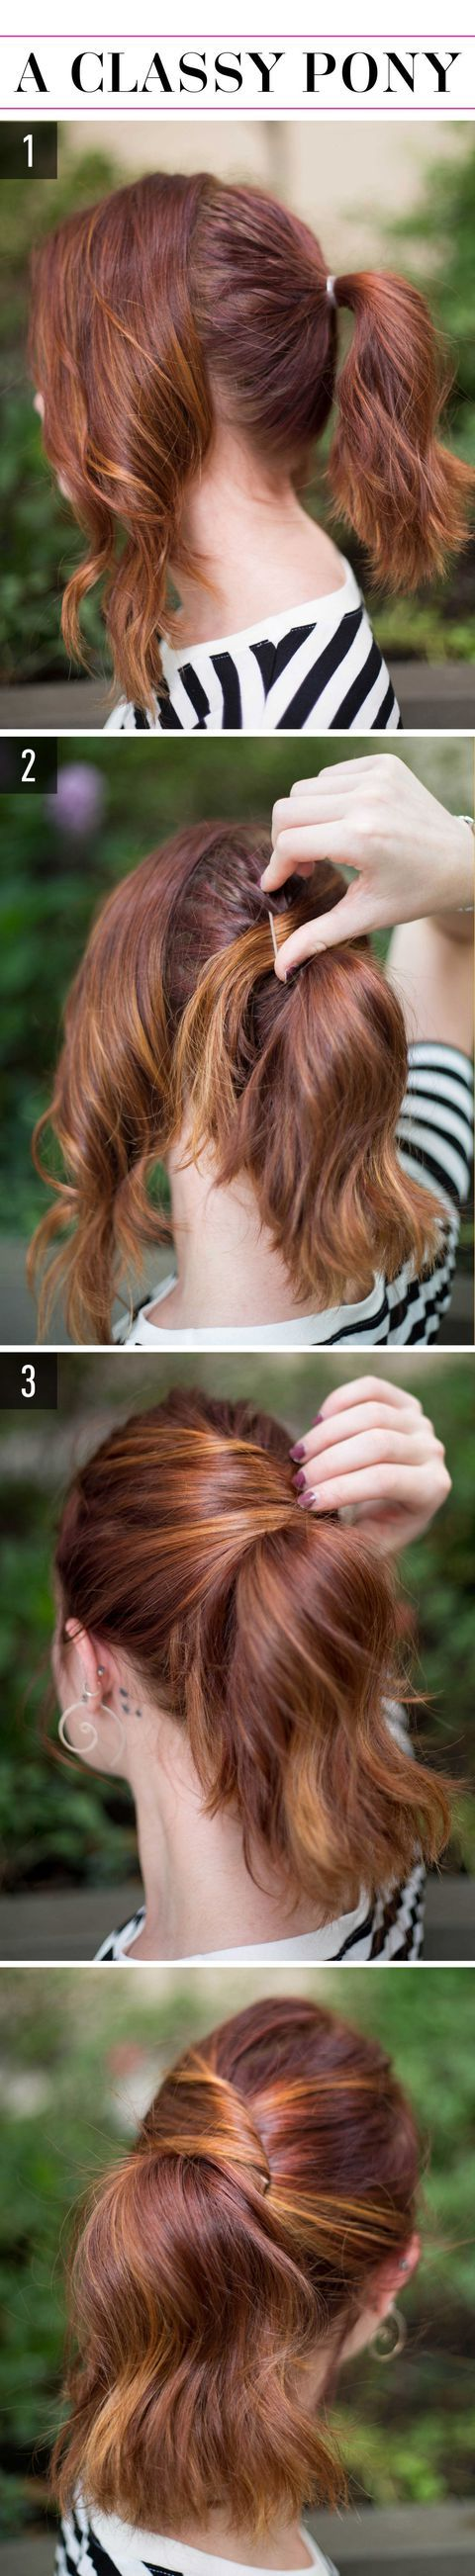 supereasy hairstyles for lazy girls who canut even hair hair